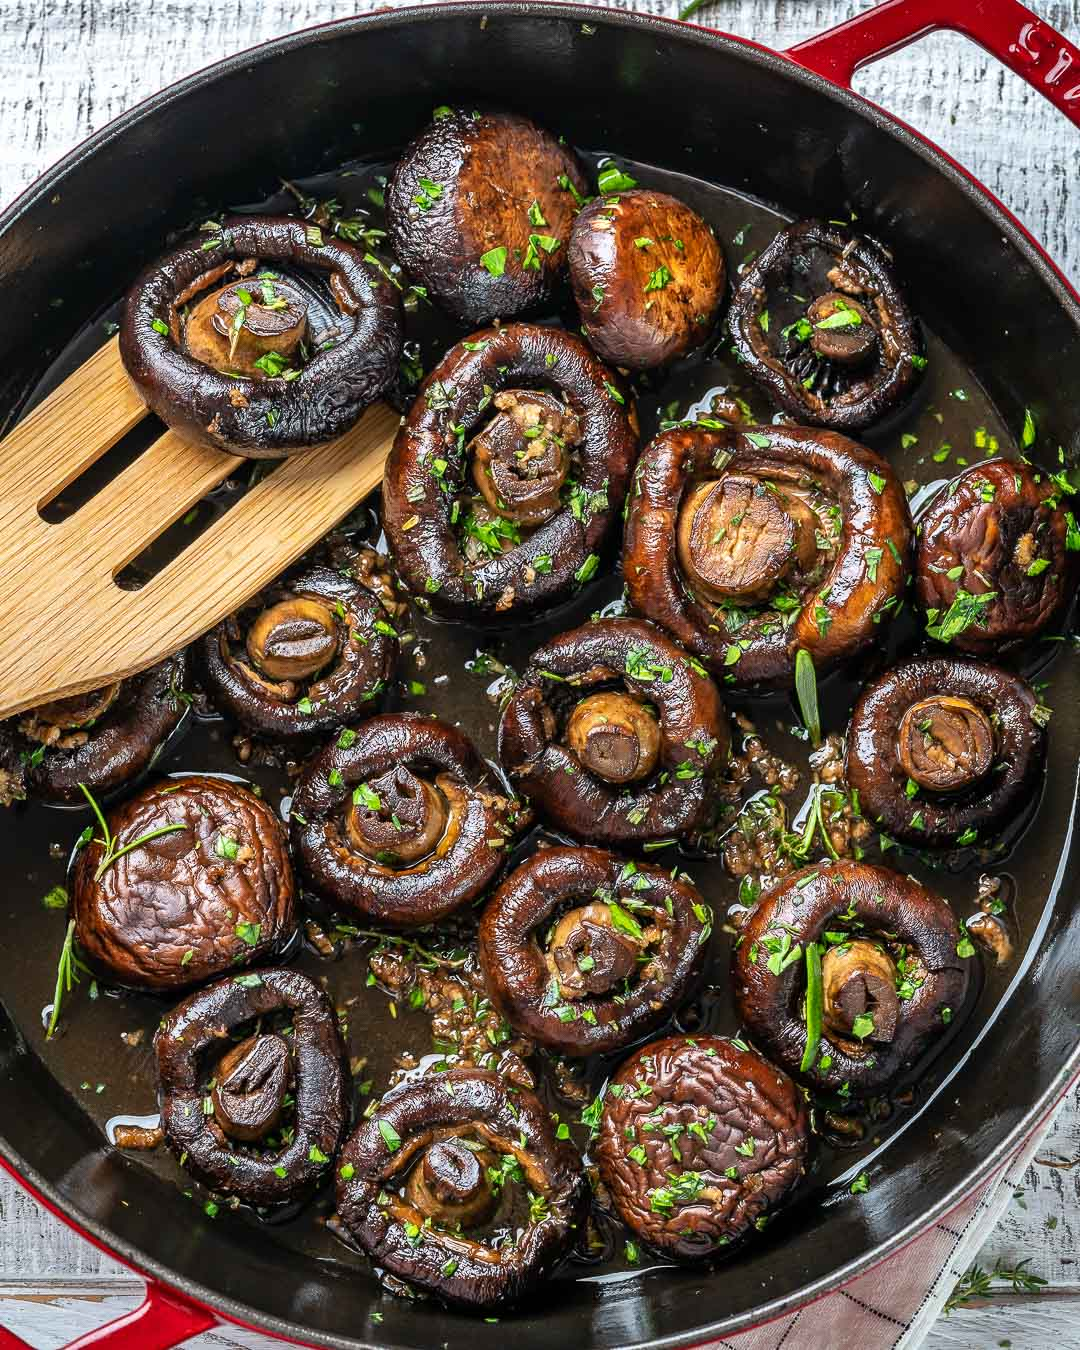 Garlic Herb Mushrooms Make a Healthy, Flavor Rich Side Dish!